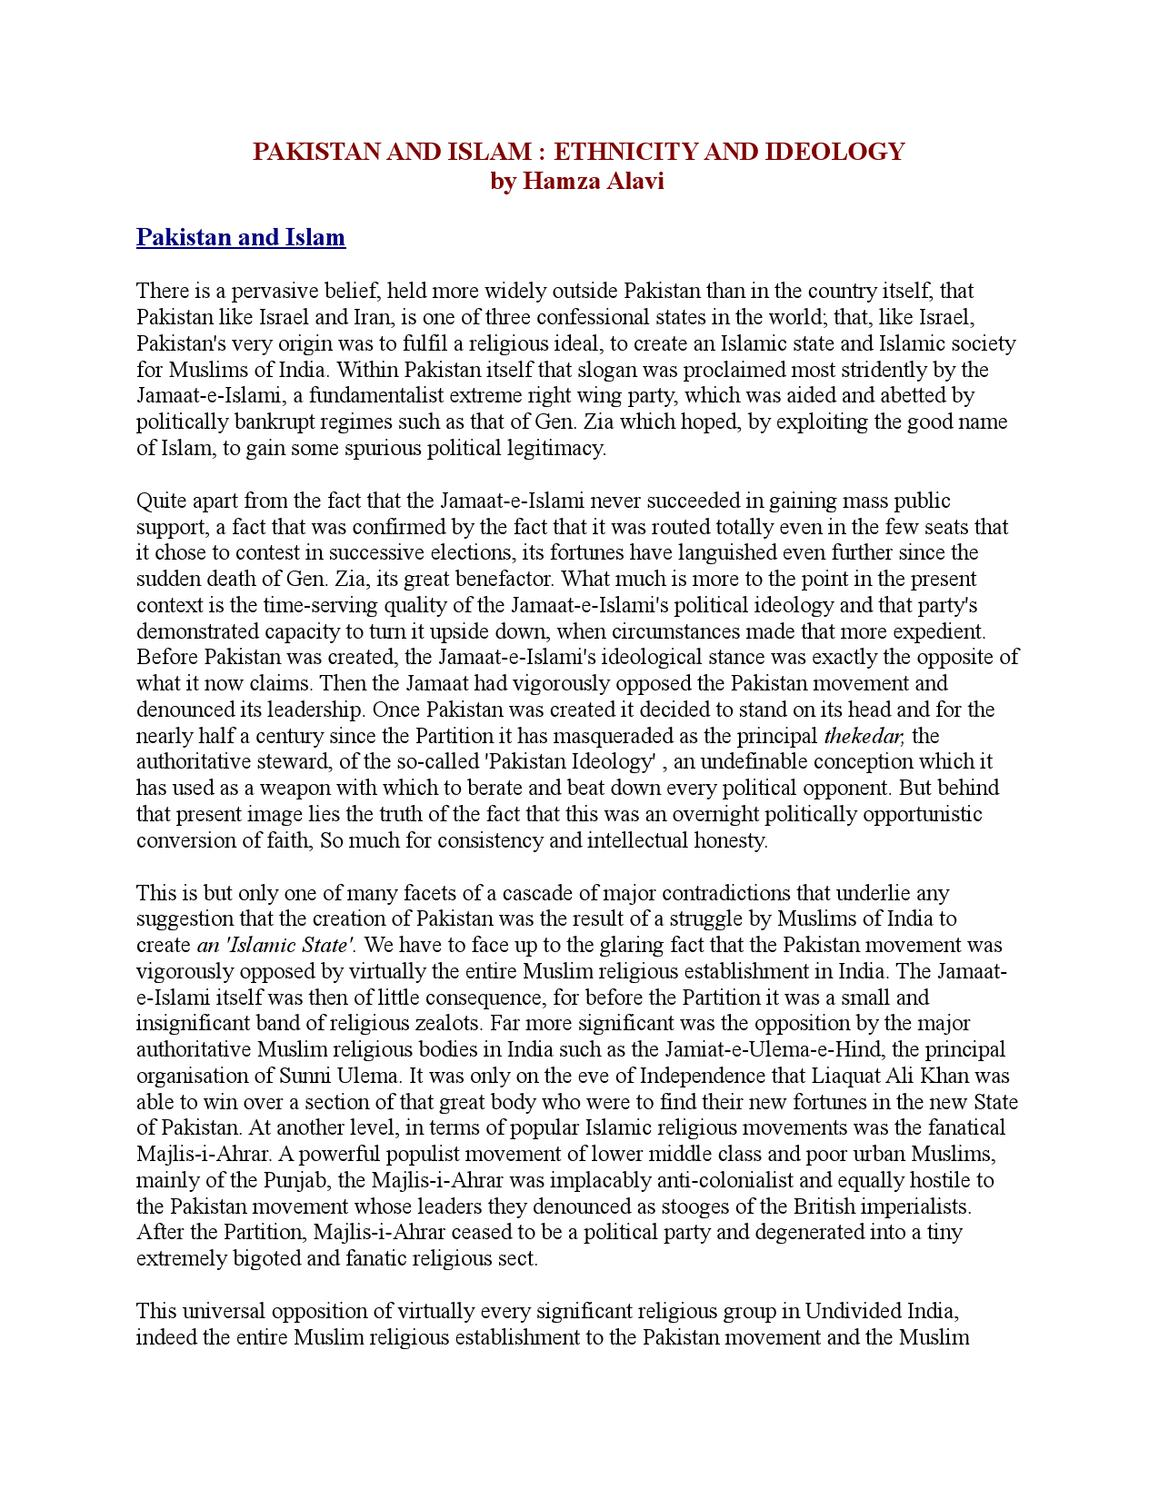 ethnicity in pakistan The politics of ethnicity in pakistan: the baloch, sindhi and mohajir ethnic movements (routledge contemporary south asia series) - kindle edition by farhan hanif siddiqi.